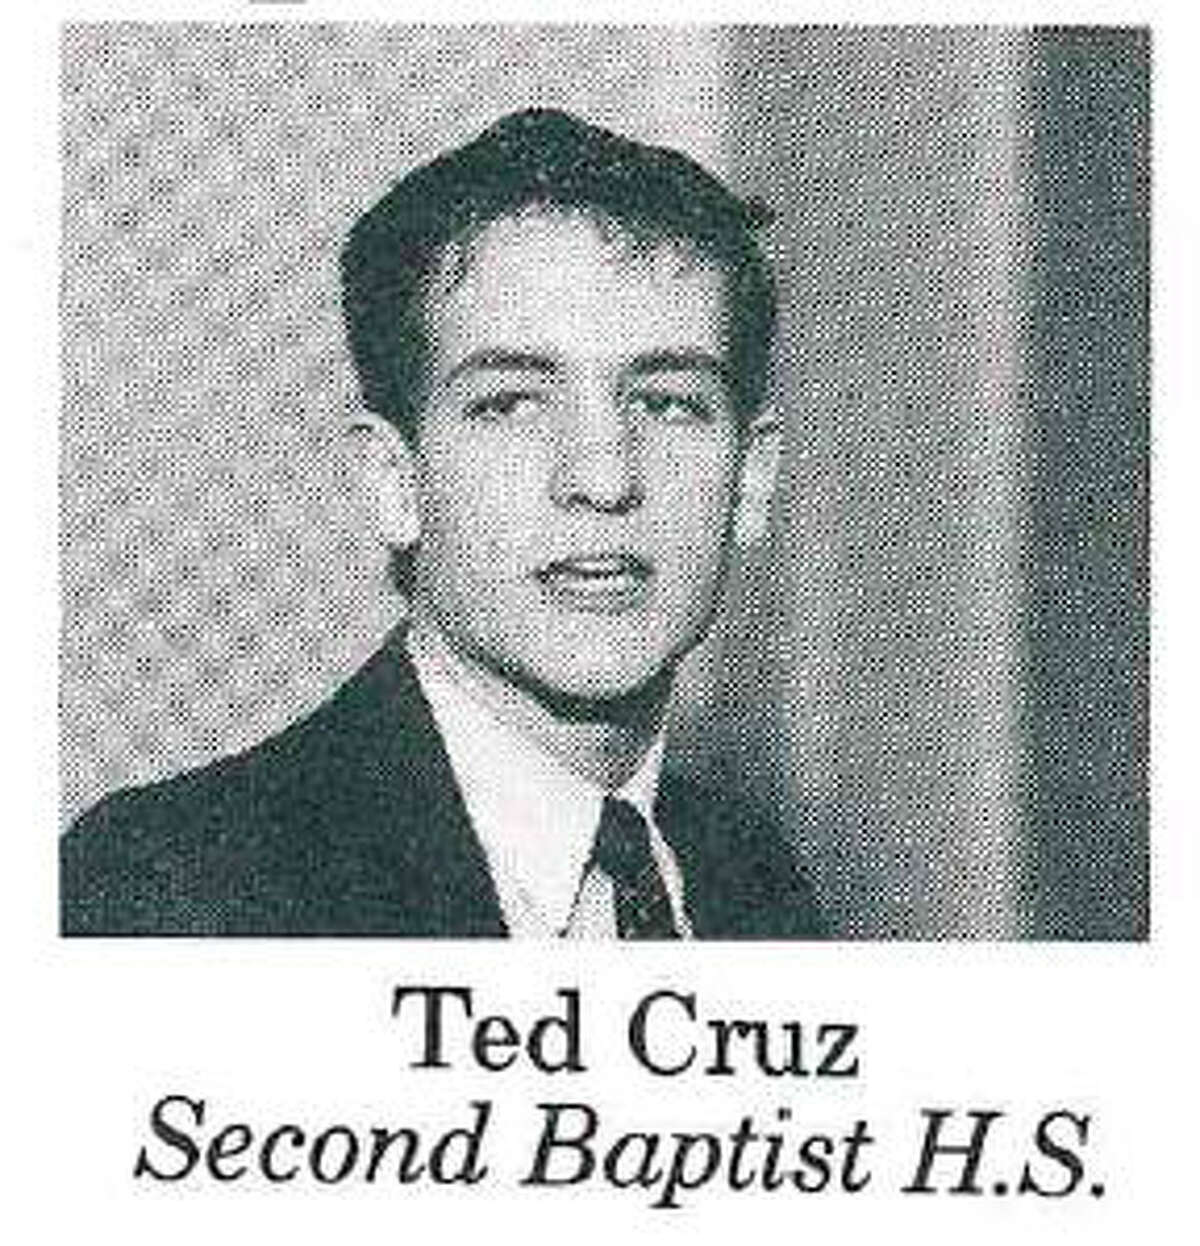 Ted Cruz A young Ted Cruz, circa 1988, in a catalog of scholarship winners from the Free Enterprise Institute in Houston.